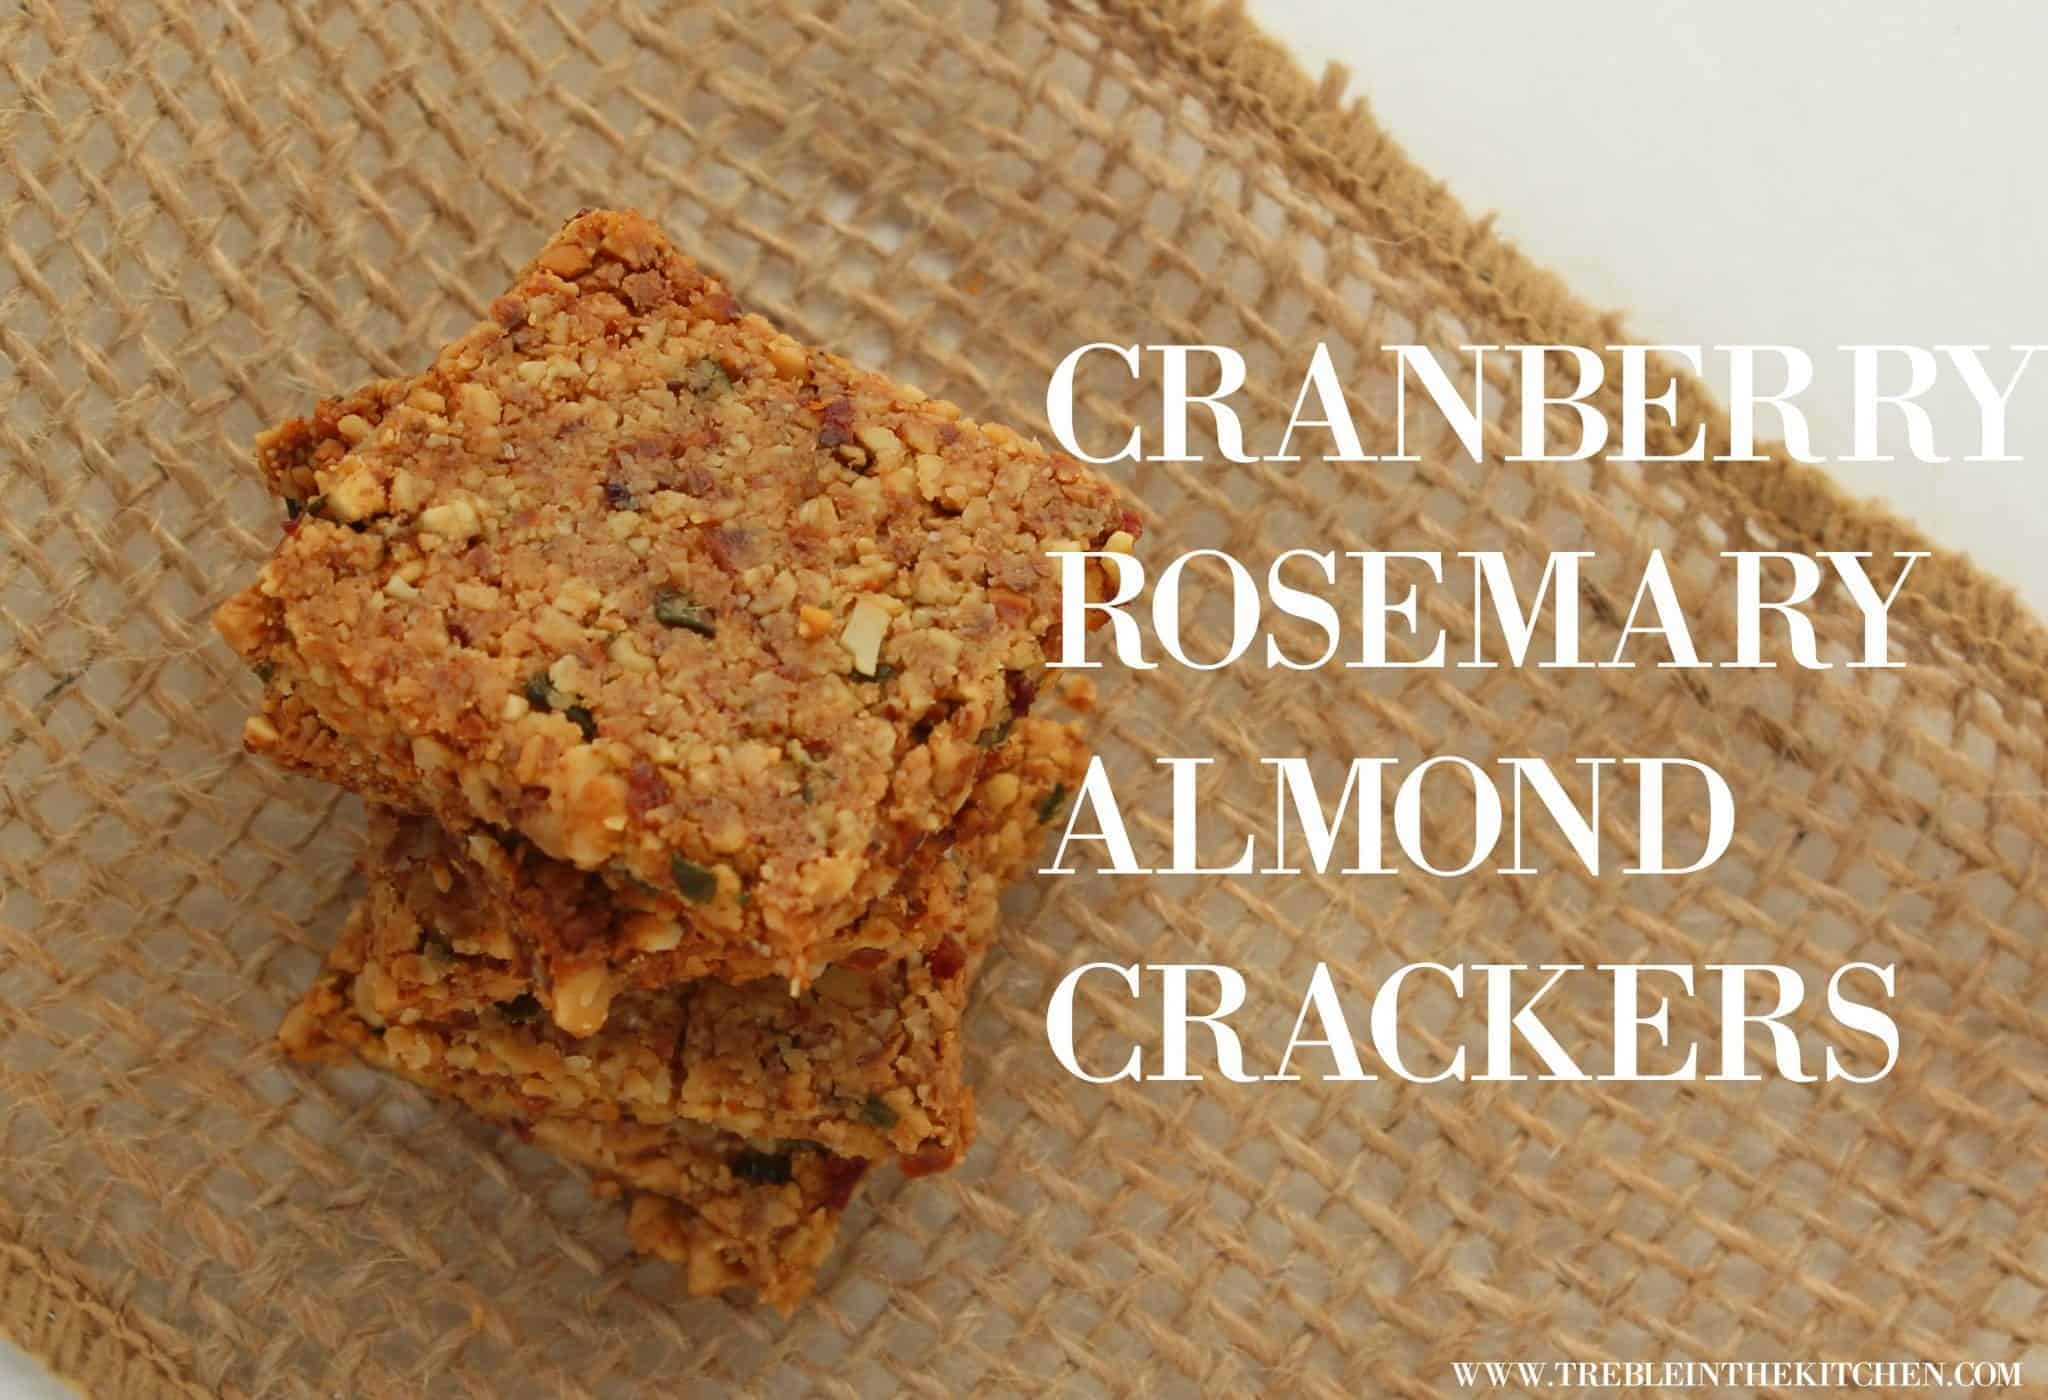 Cranberry Rosemary Almond Crackers from Treble in the Kitchen gluten free, grain free, paleo, vegan